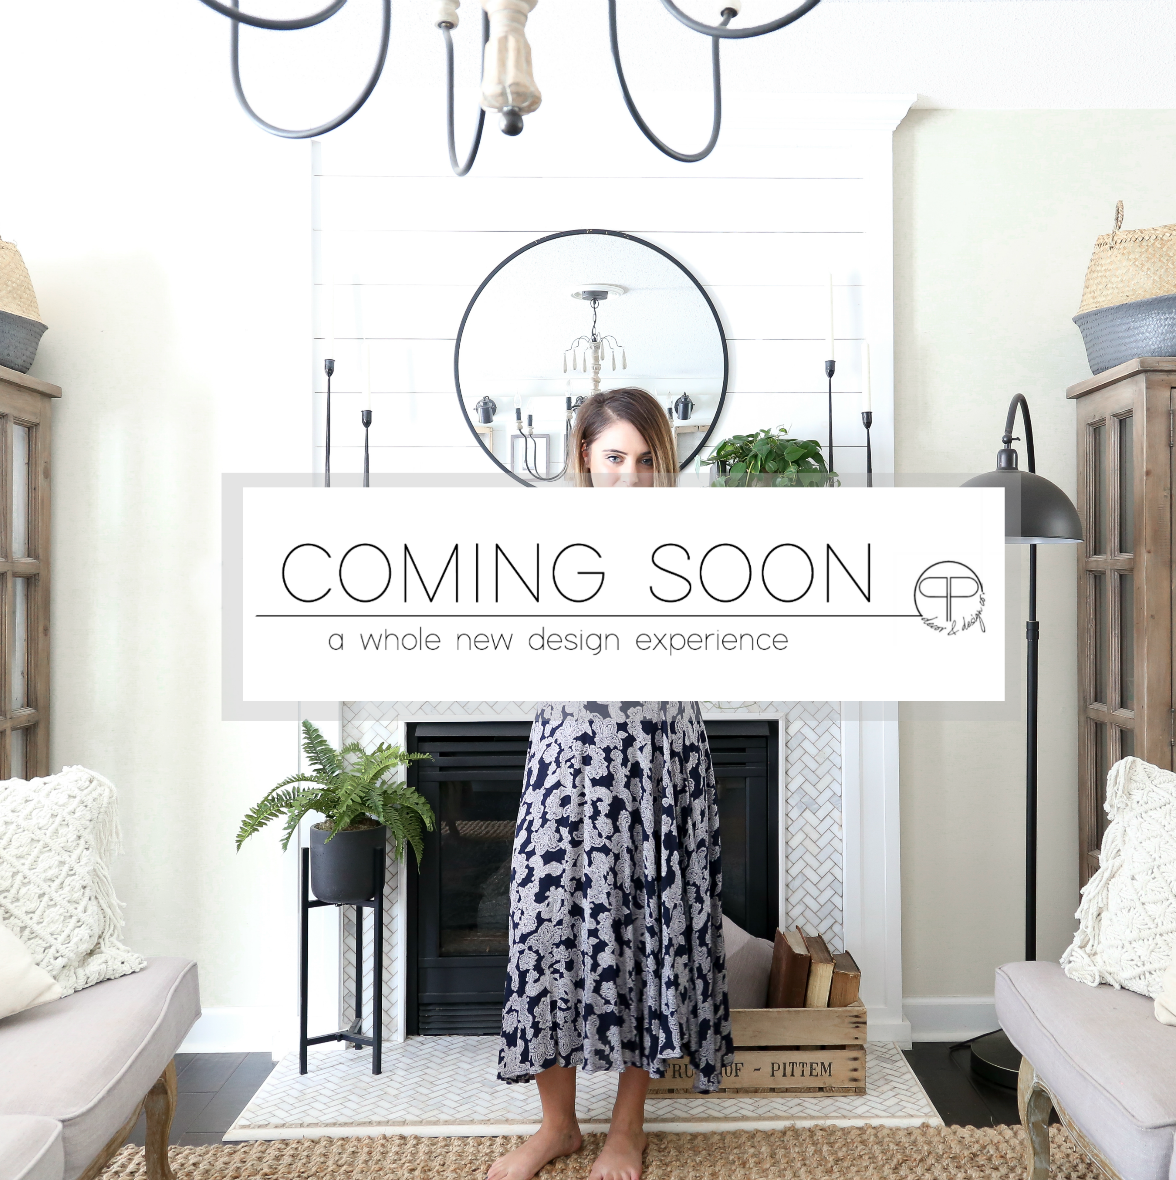 Plum_Pretty_Interior_Design_Coming_Soon.png